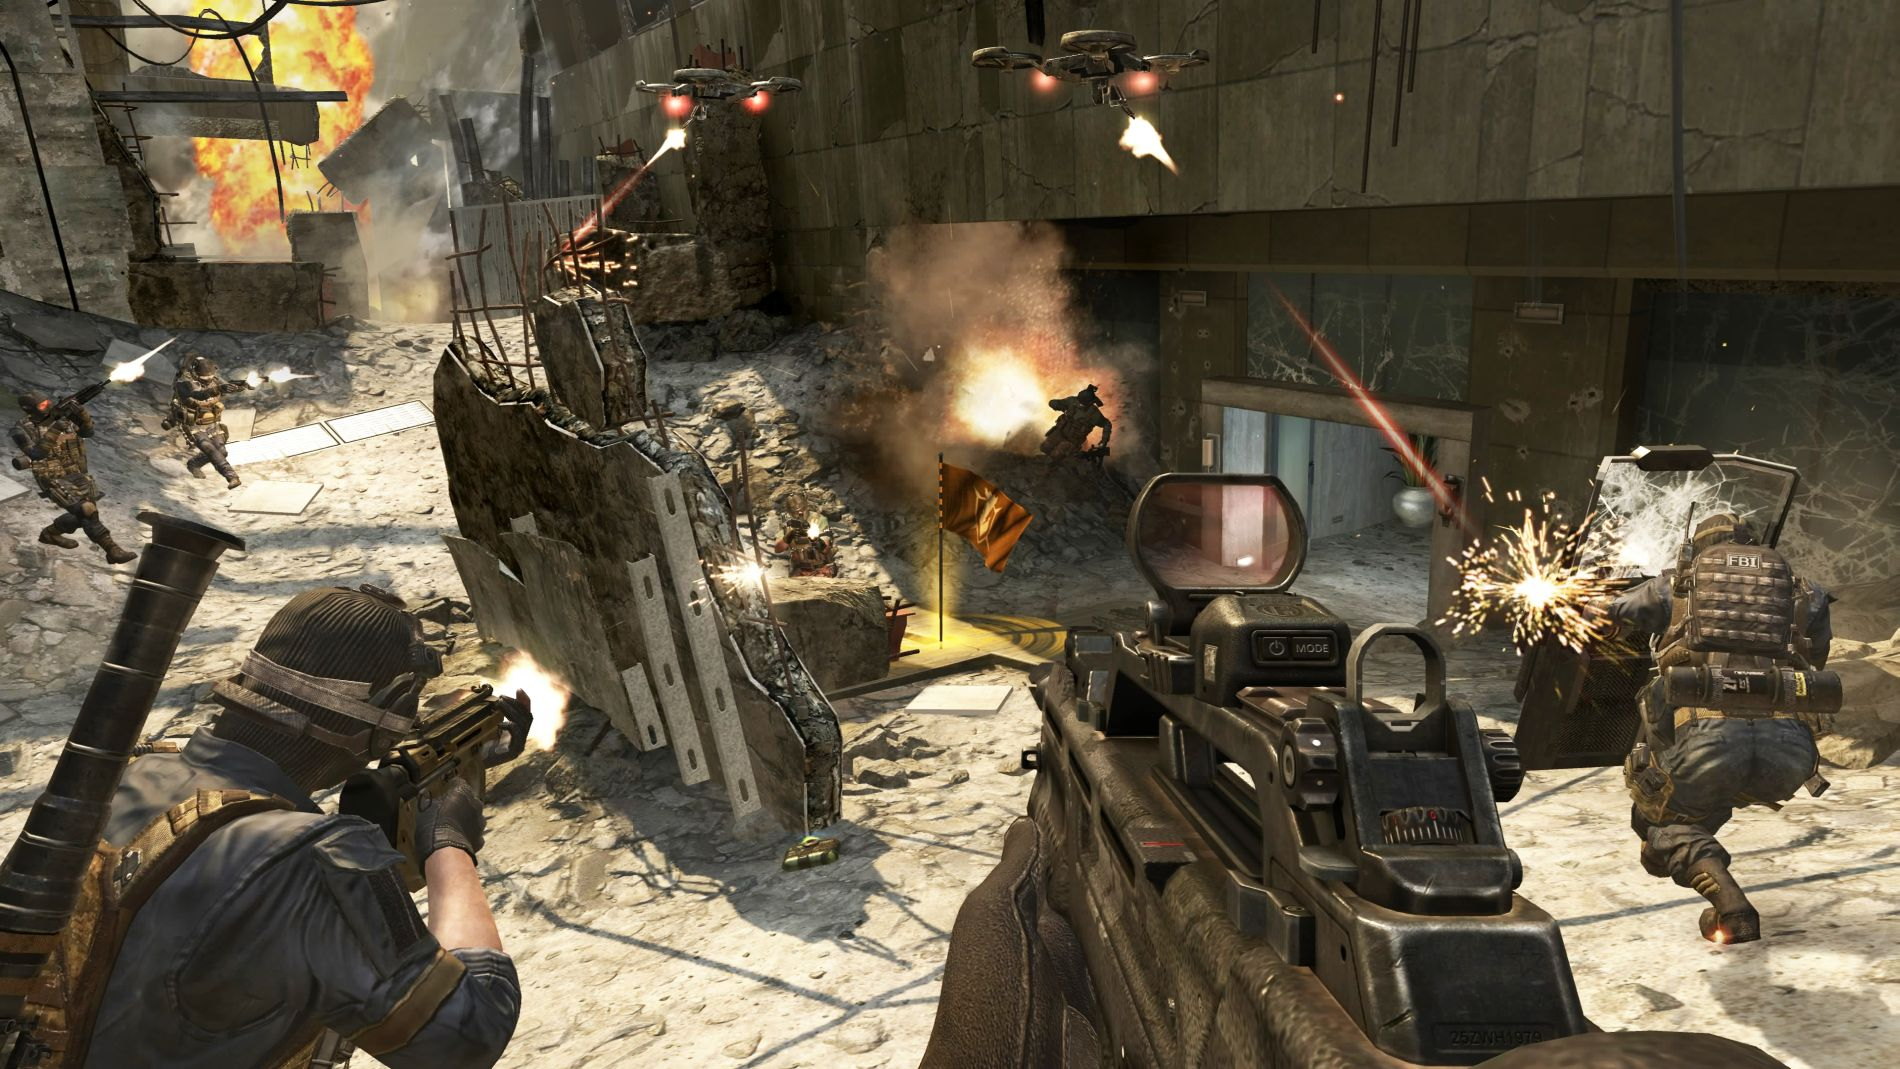 Call Of Duty Black Ops 2 Gamescom 2012 Screenshots Over One Hour Of Mp Gameplay Footage